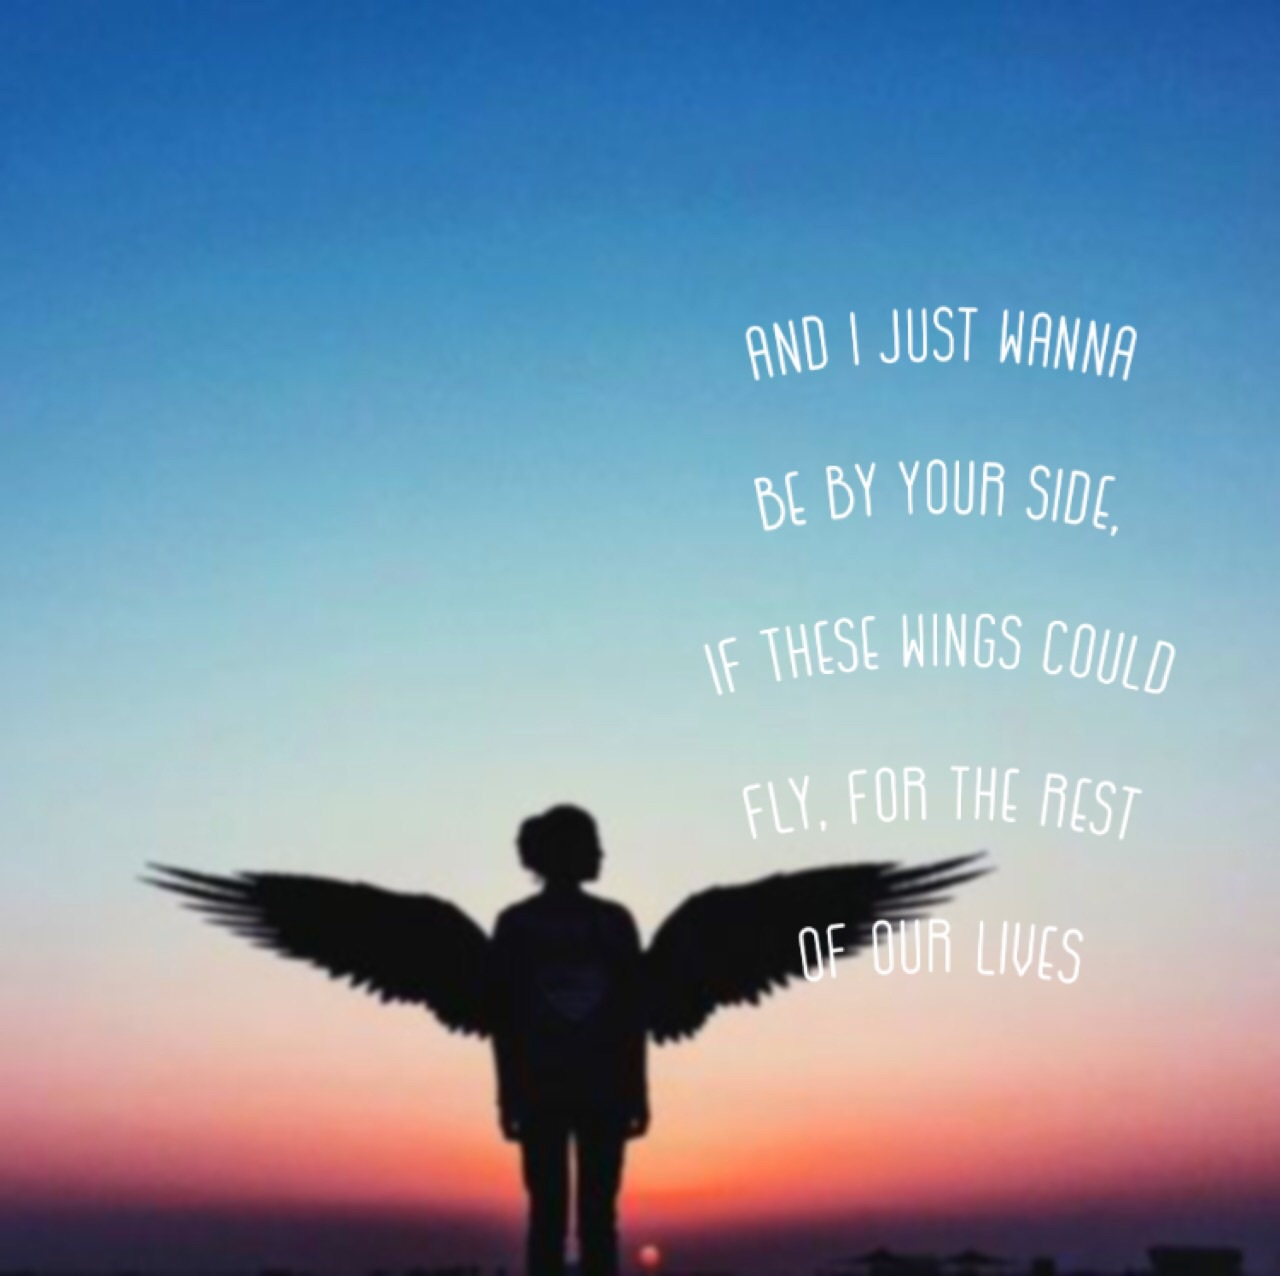 birdy wings love missing you missing quotes life sadness